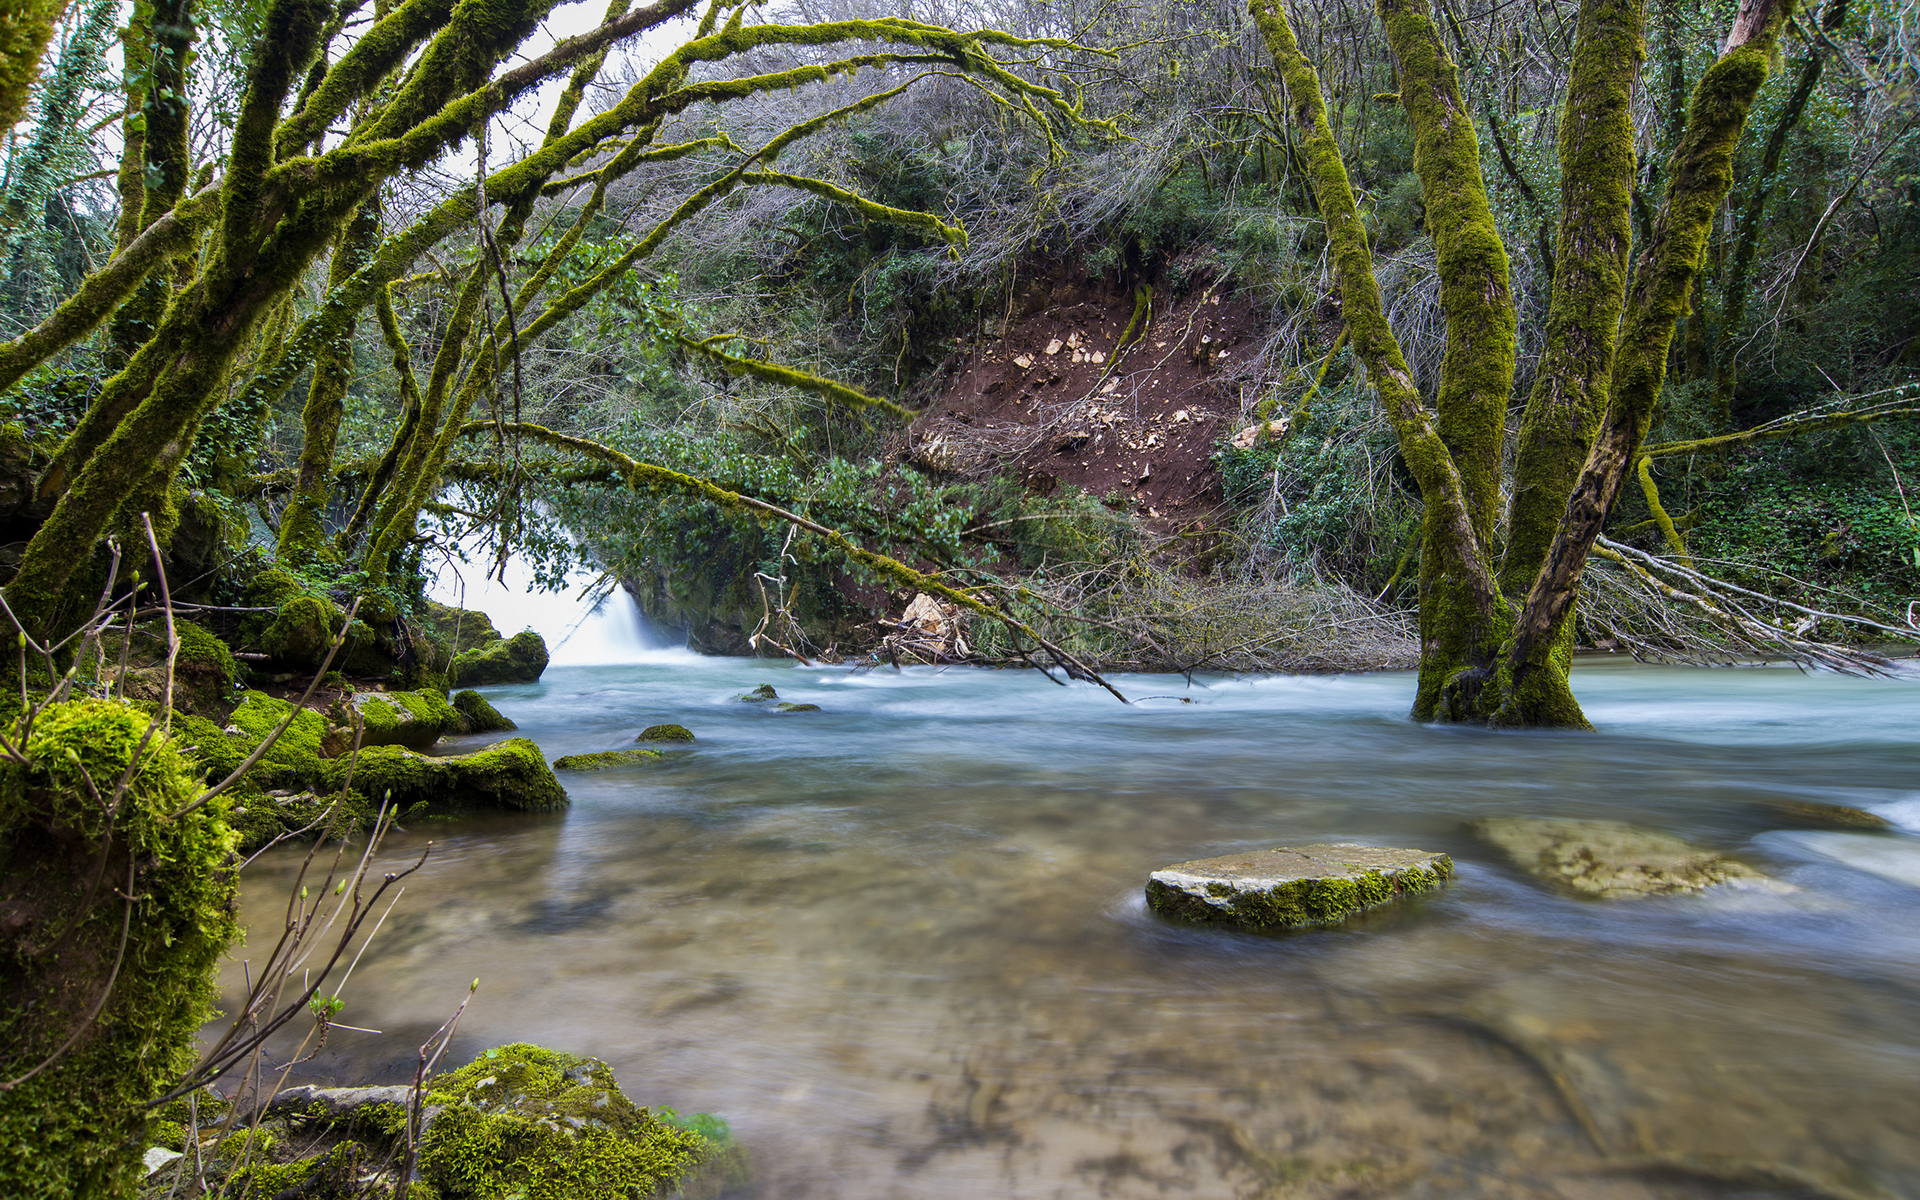 River Trees Moss Forest Rocks Stones wallpaper background 1920x1200